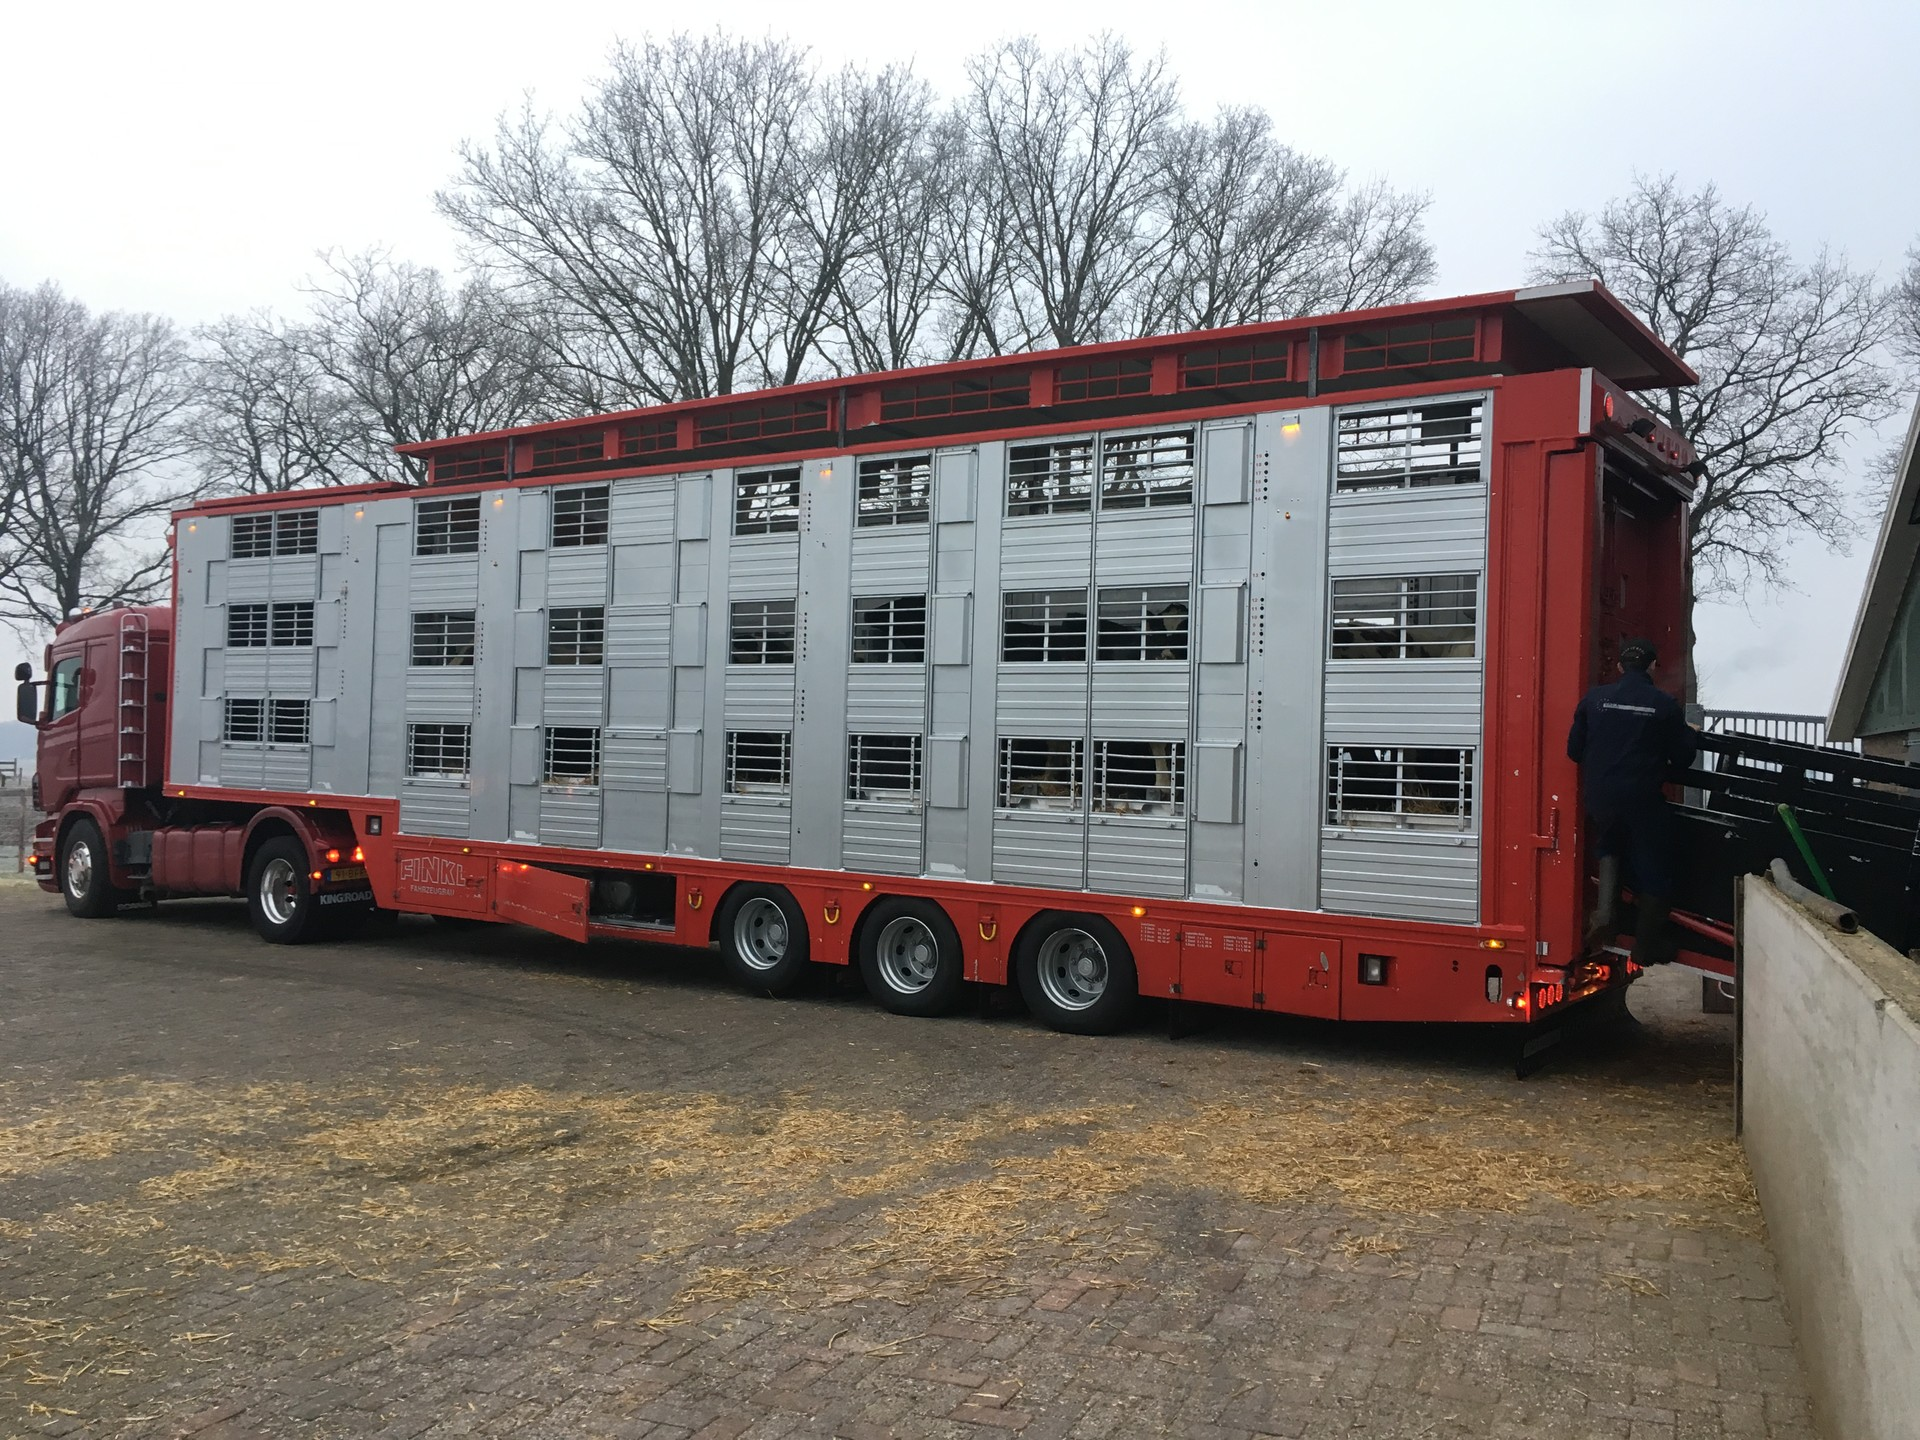 First shipment high quality breeding cattle to Pakistan